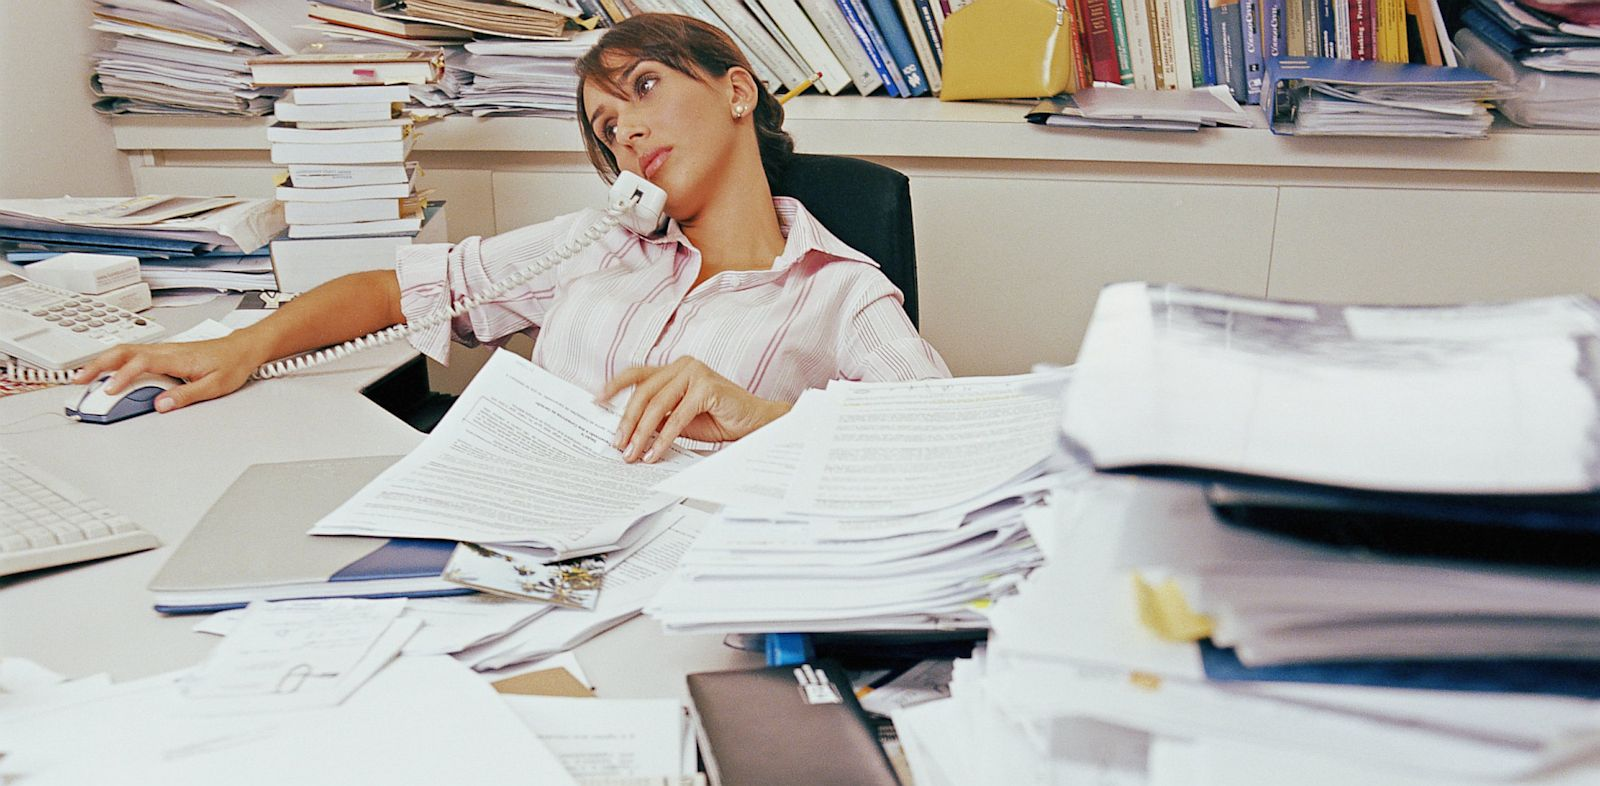 Working in dull and dirty environment can hamper your brain!